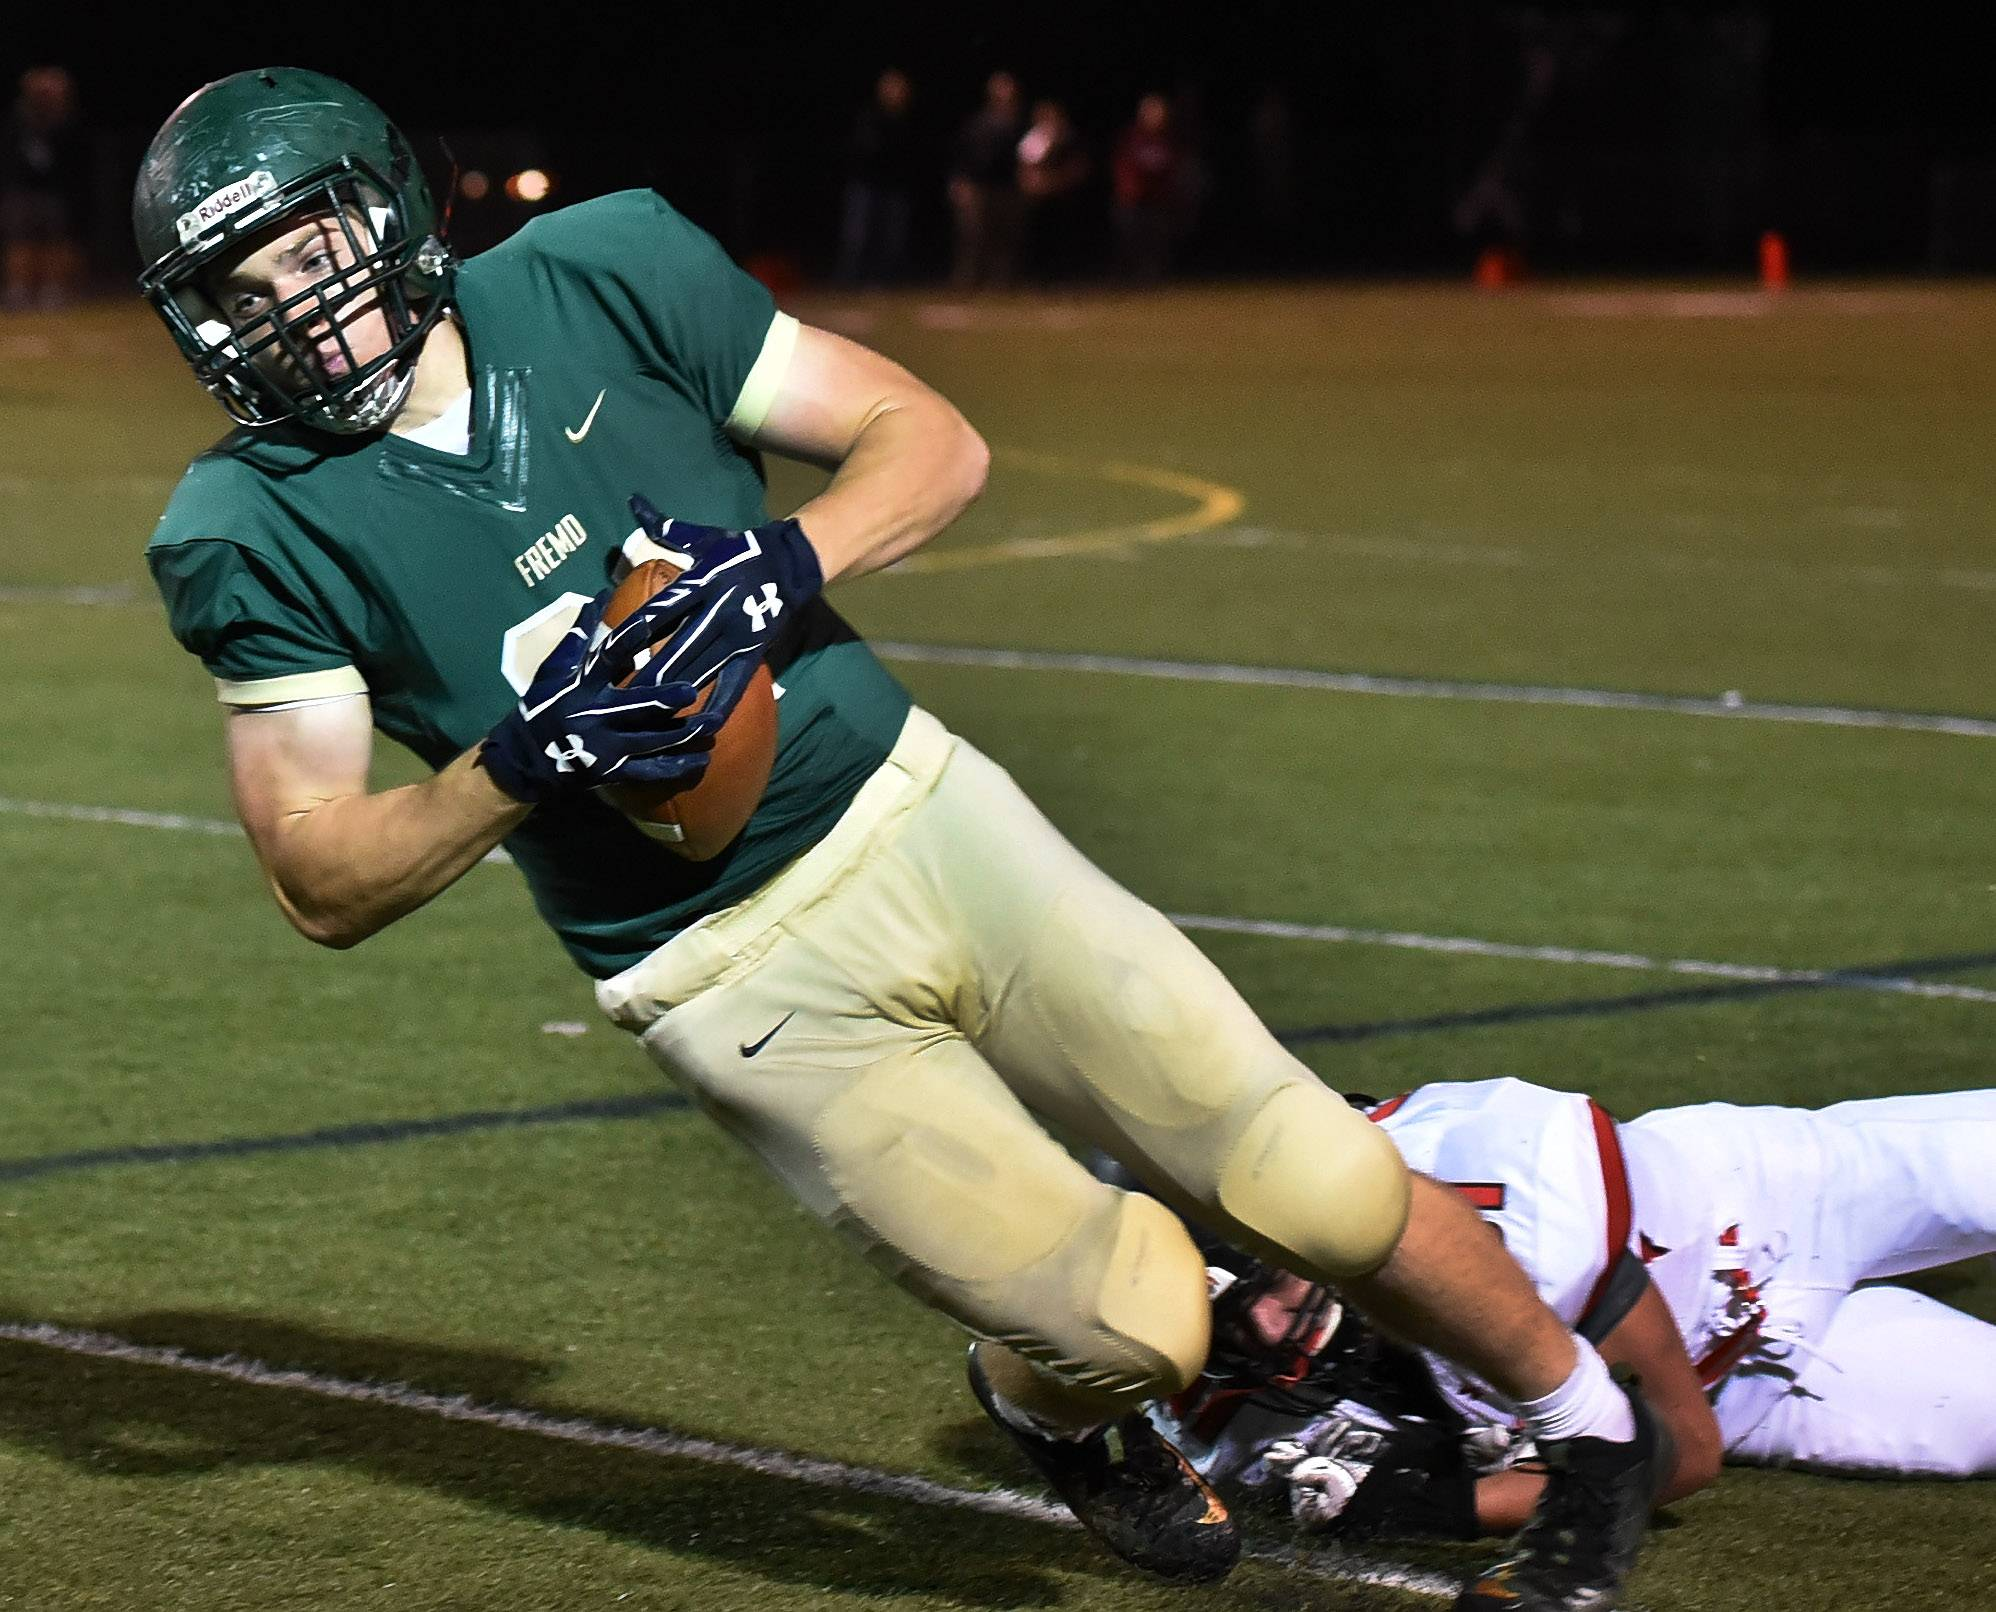 Fremd's Austin Schwantz is tackled near the sidelines after a first-half catch against visiting Barrington on Friday.